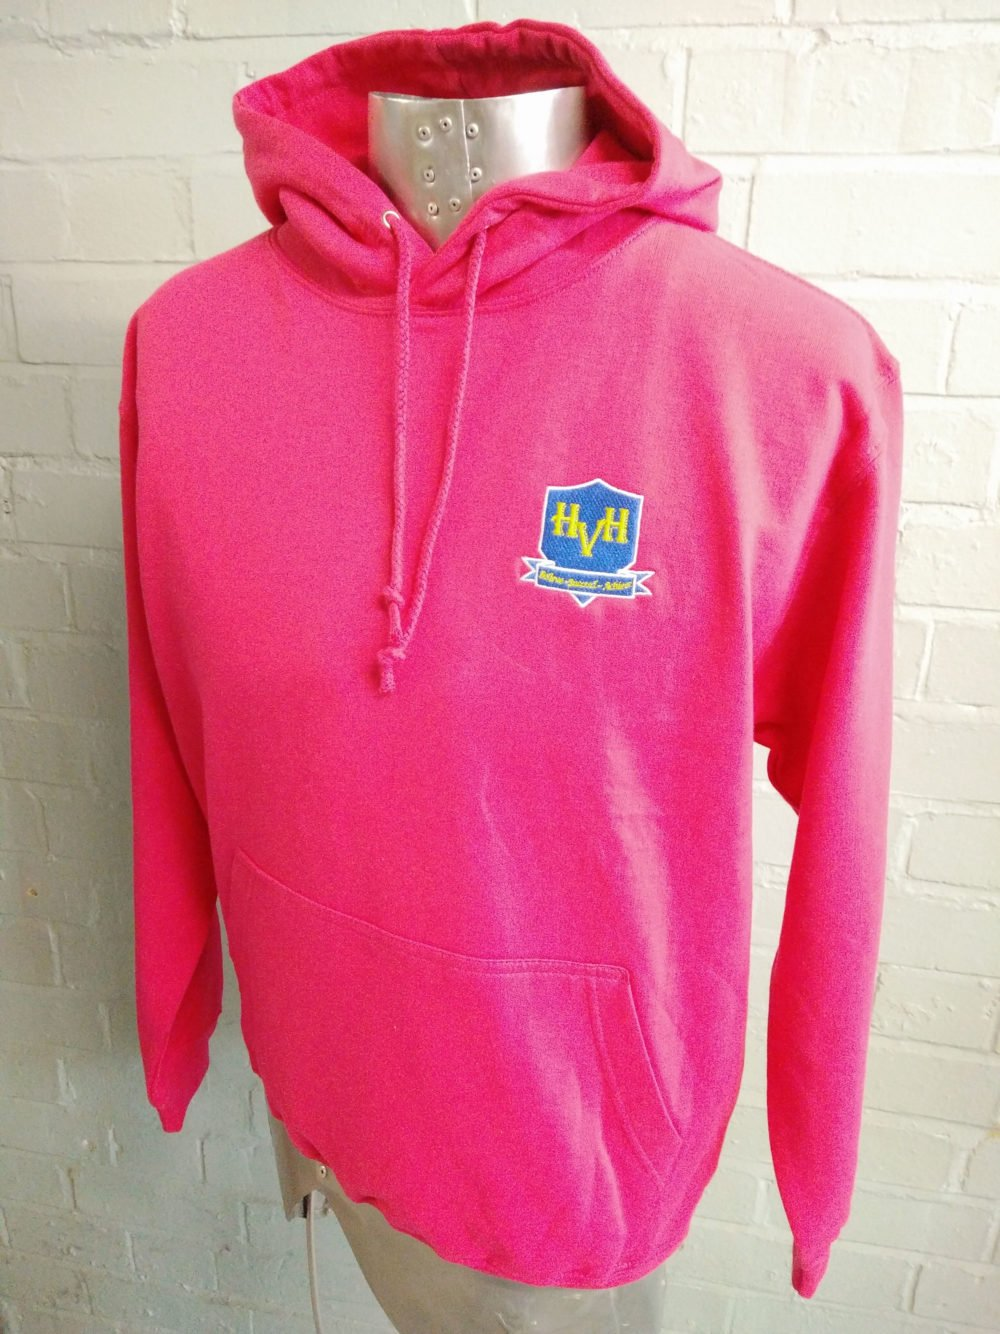 HVH Bright Pink Leavers Hoodies 2017 2